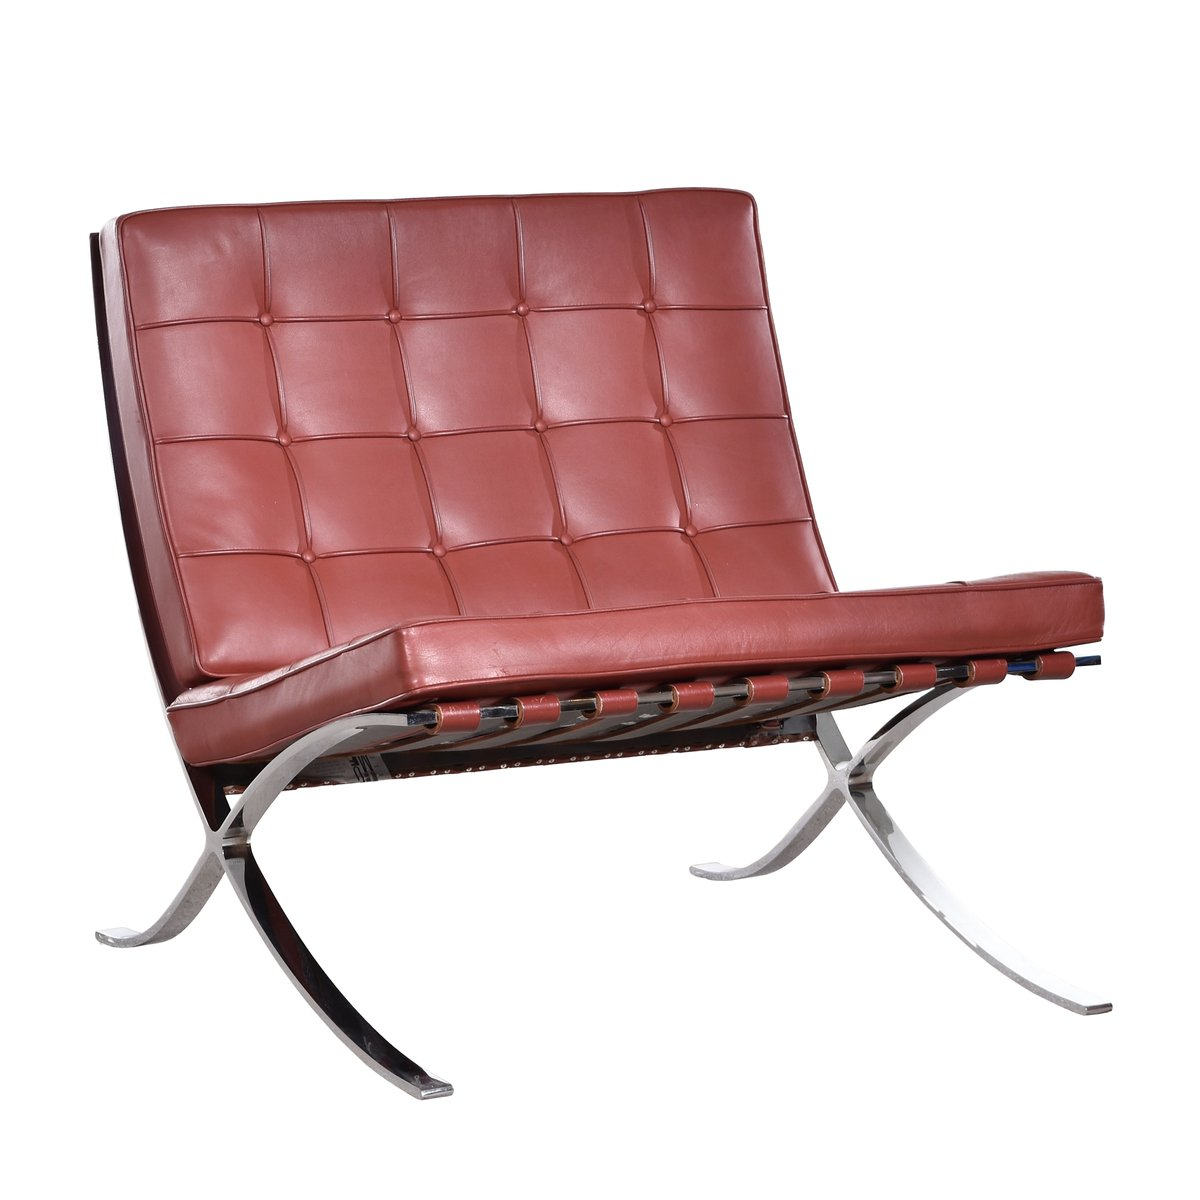 Chaise barcelona par ludwig mies van der rohe pour knoll for Chaise barcelona knoll prix